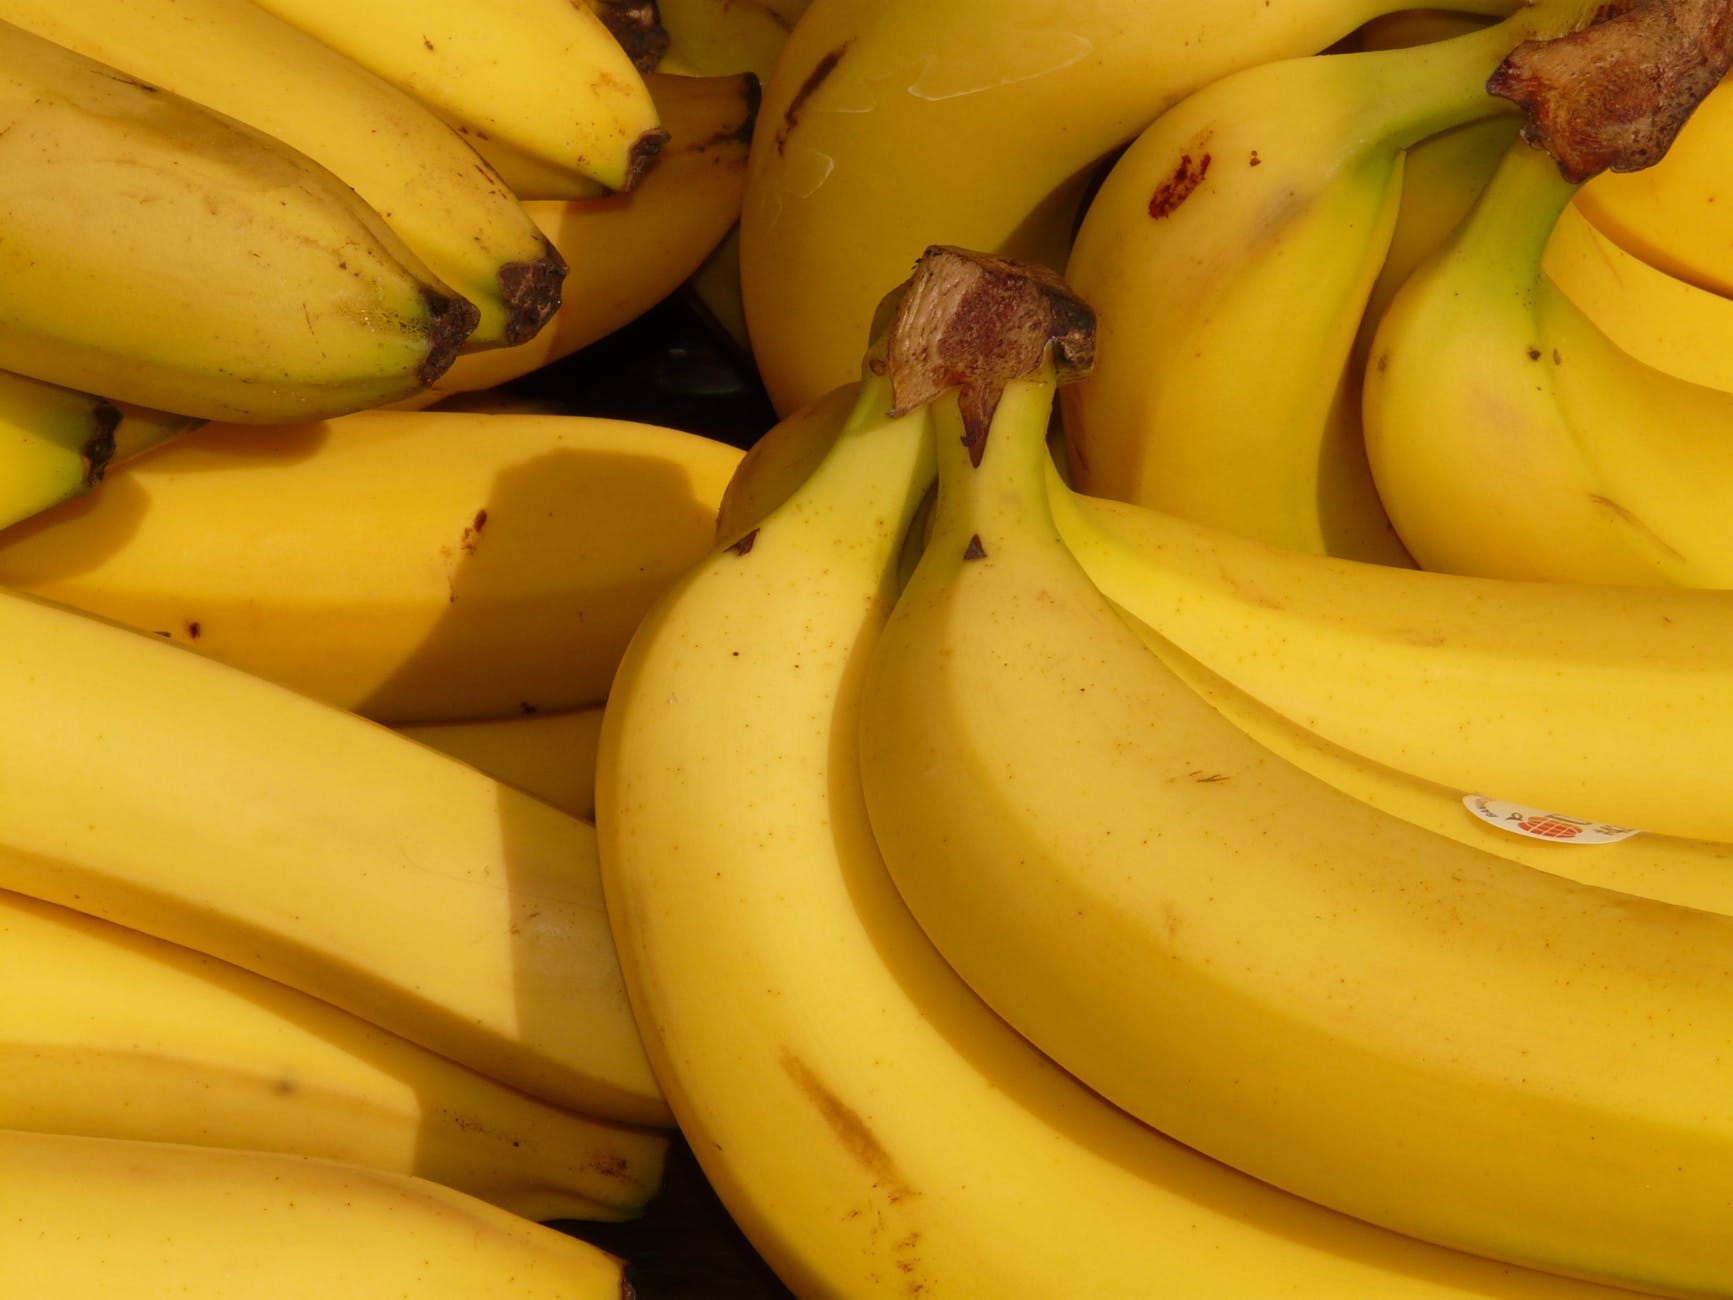 banana-fruit-healthy-yellow-41957.jpeg